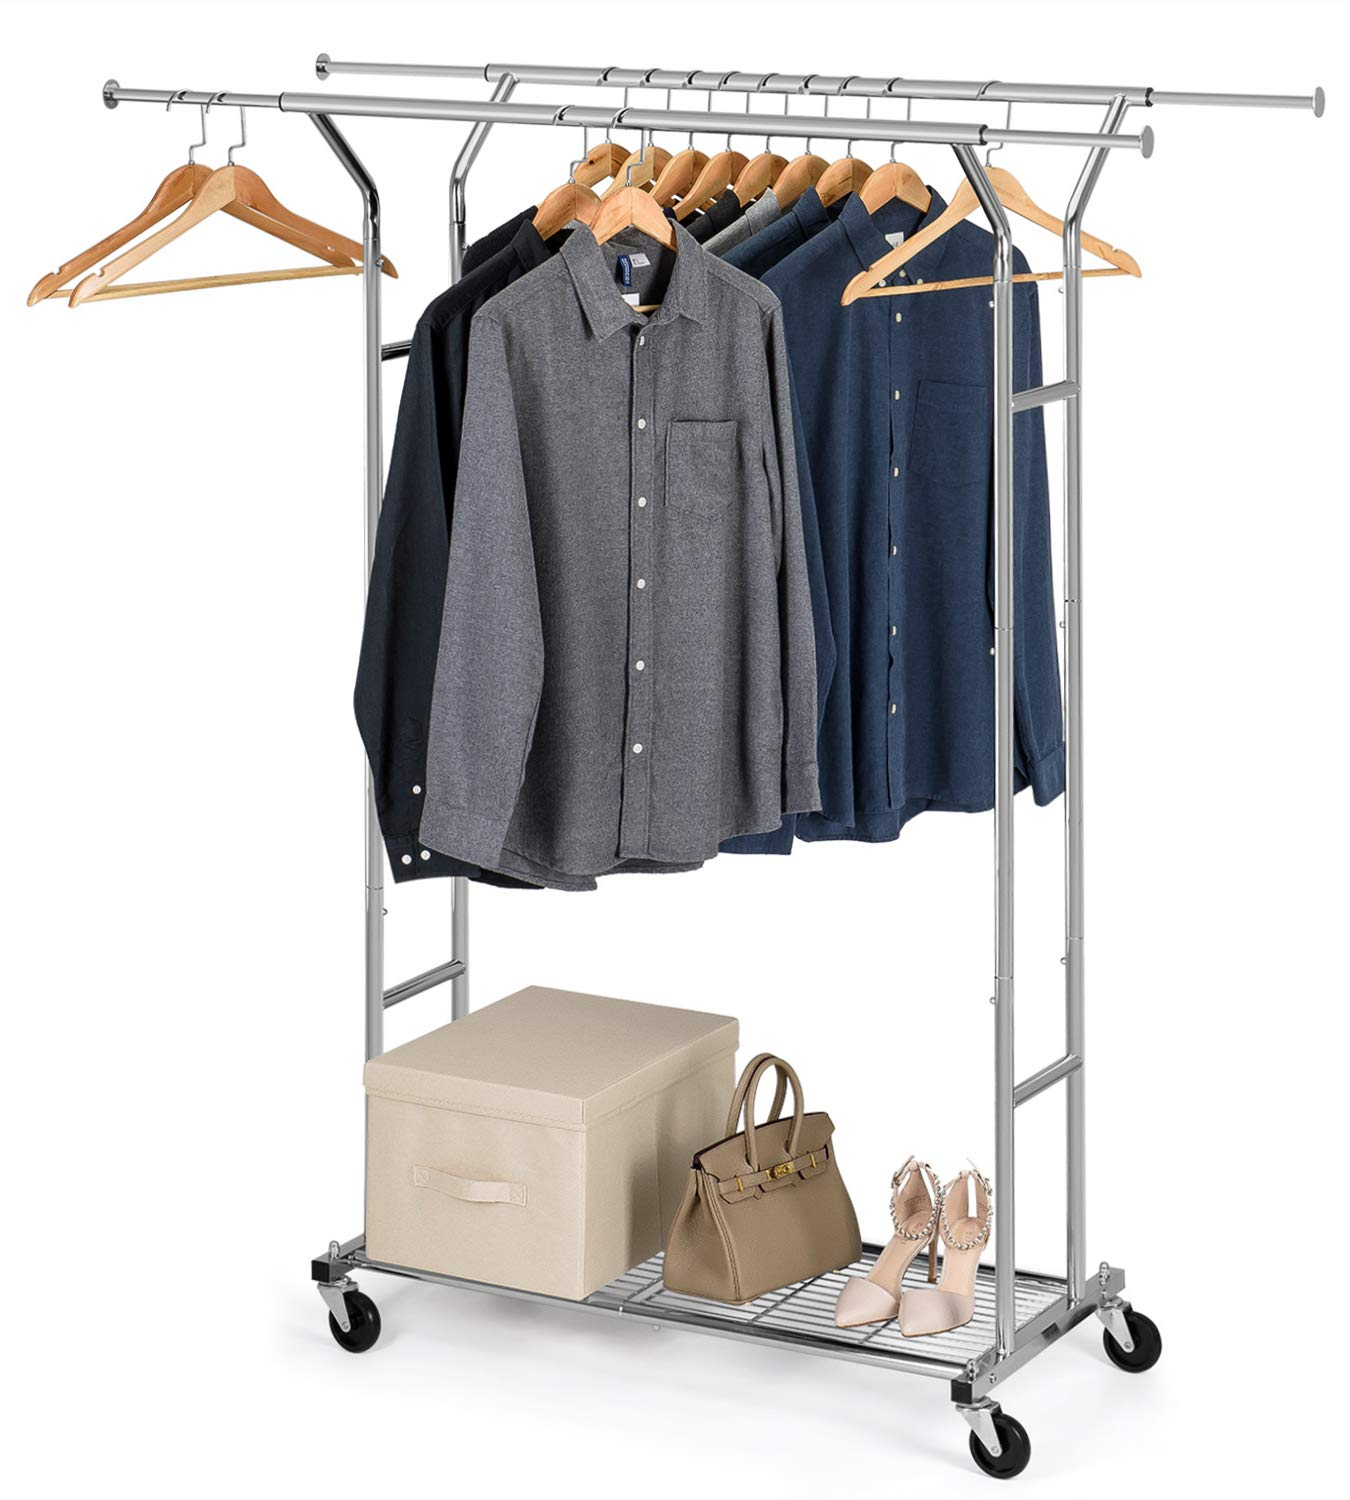 Bextsware Clothes Garment Rack On Wheels, Expandable Double Rails Heavy Duty Commercial Grade Hanging Clothes Organizer Stand Clothing Rack with Mesh Bottom Shelves for Boxes Shoes Storage, Chrome by Bextsware